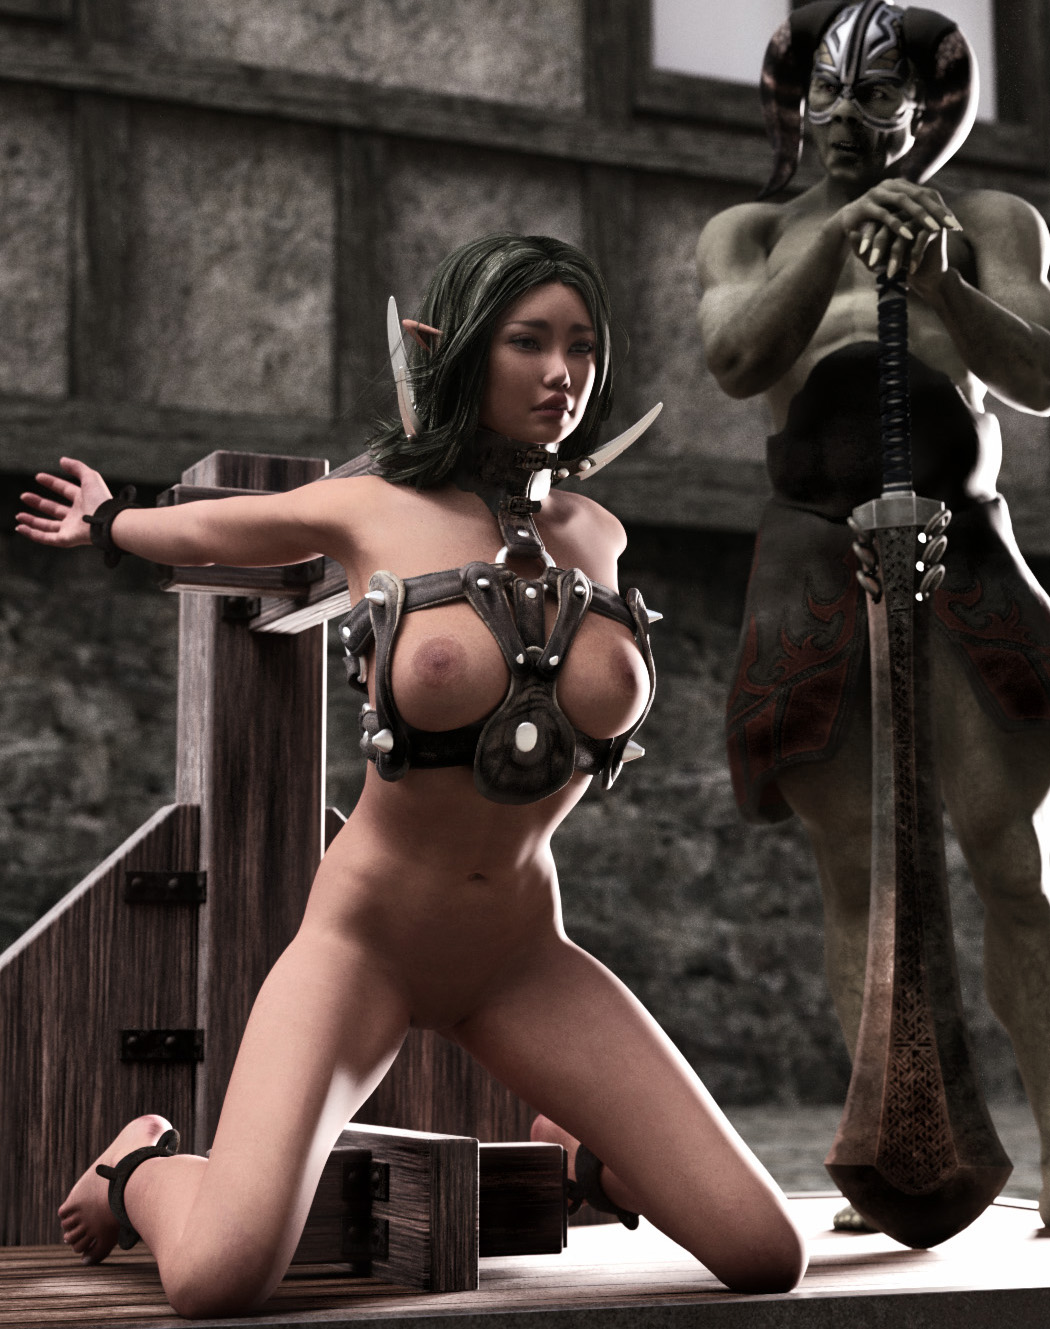 Nude warriors girls 3d wallpaper hentia image